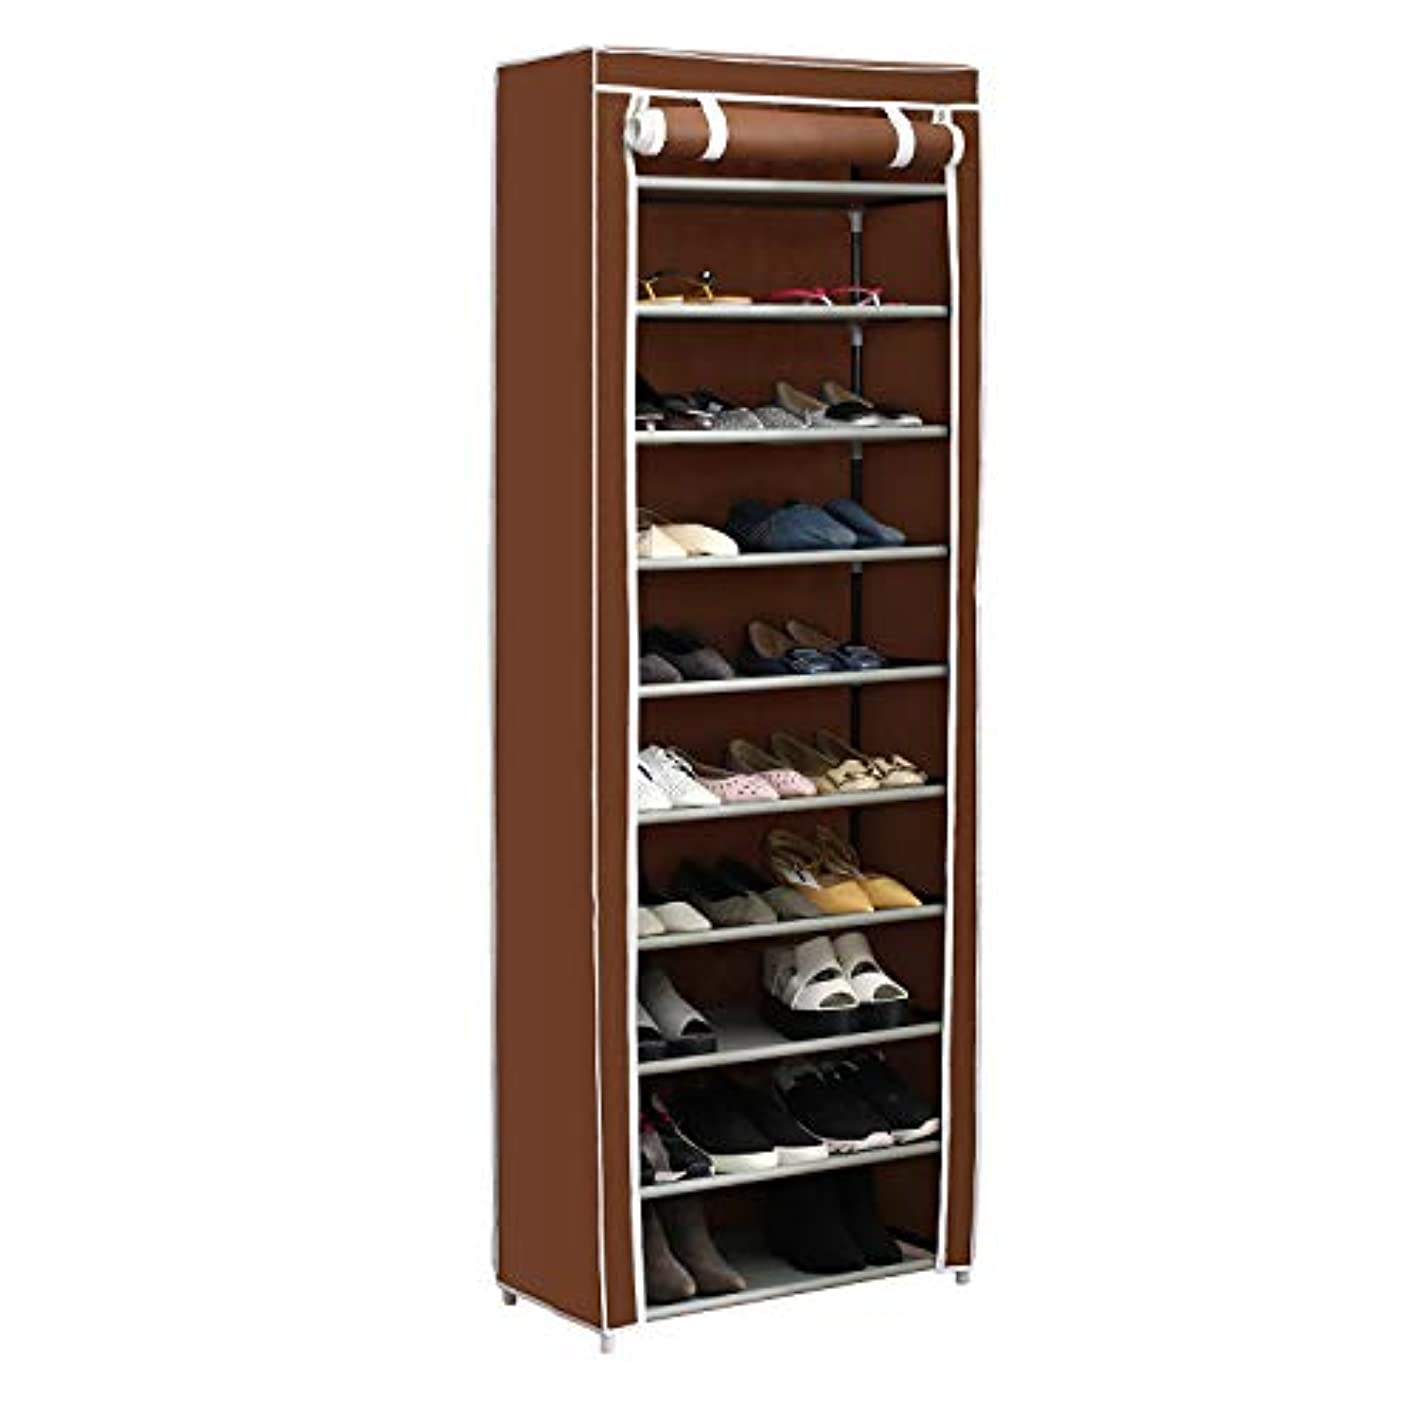 Home-Like 10-Tier Shoe Rack with Dustproof Cover 30 Pair Shoe Organizer Shoe Rack Tower Zippered Storage Shoe Cabinet in Black Ideal for Hallway Corridor L24.02''xW12.2''xH67.72'' (Brown) kjpvnz7442200